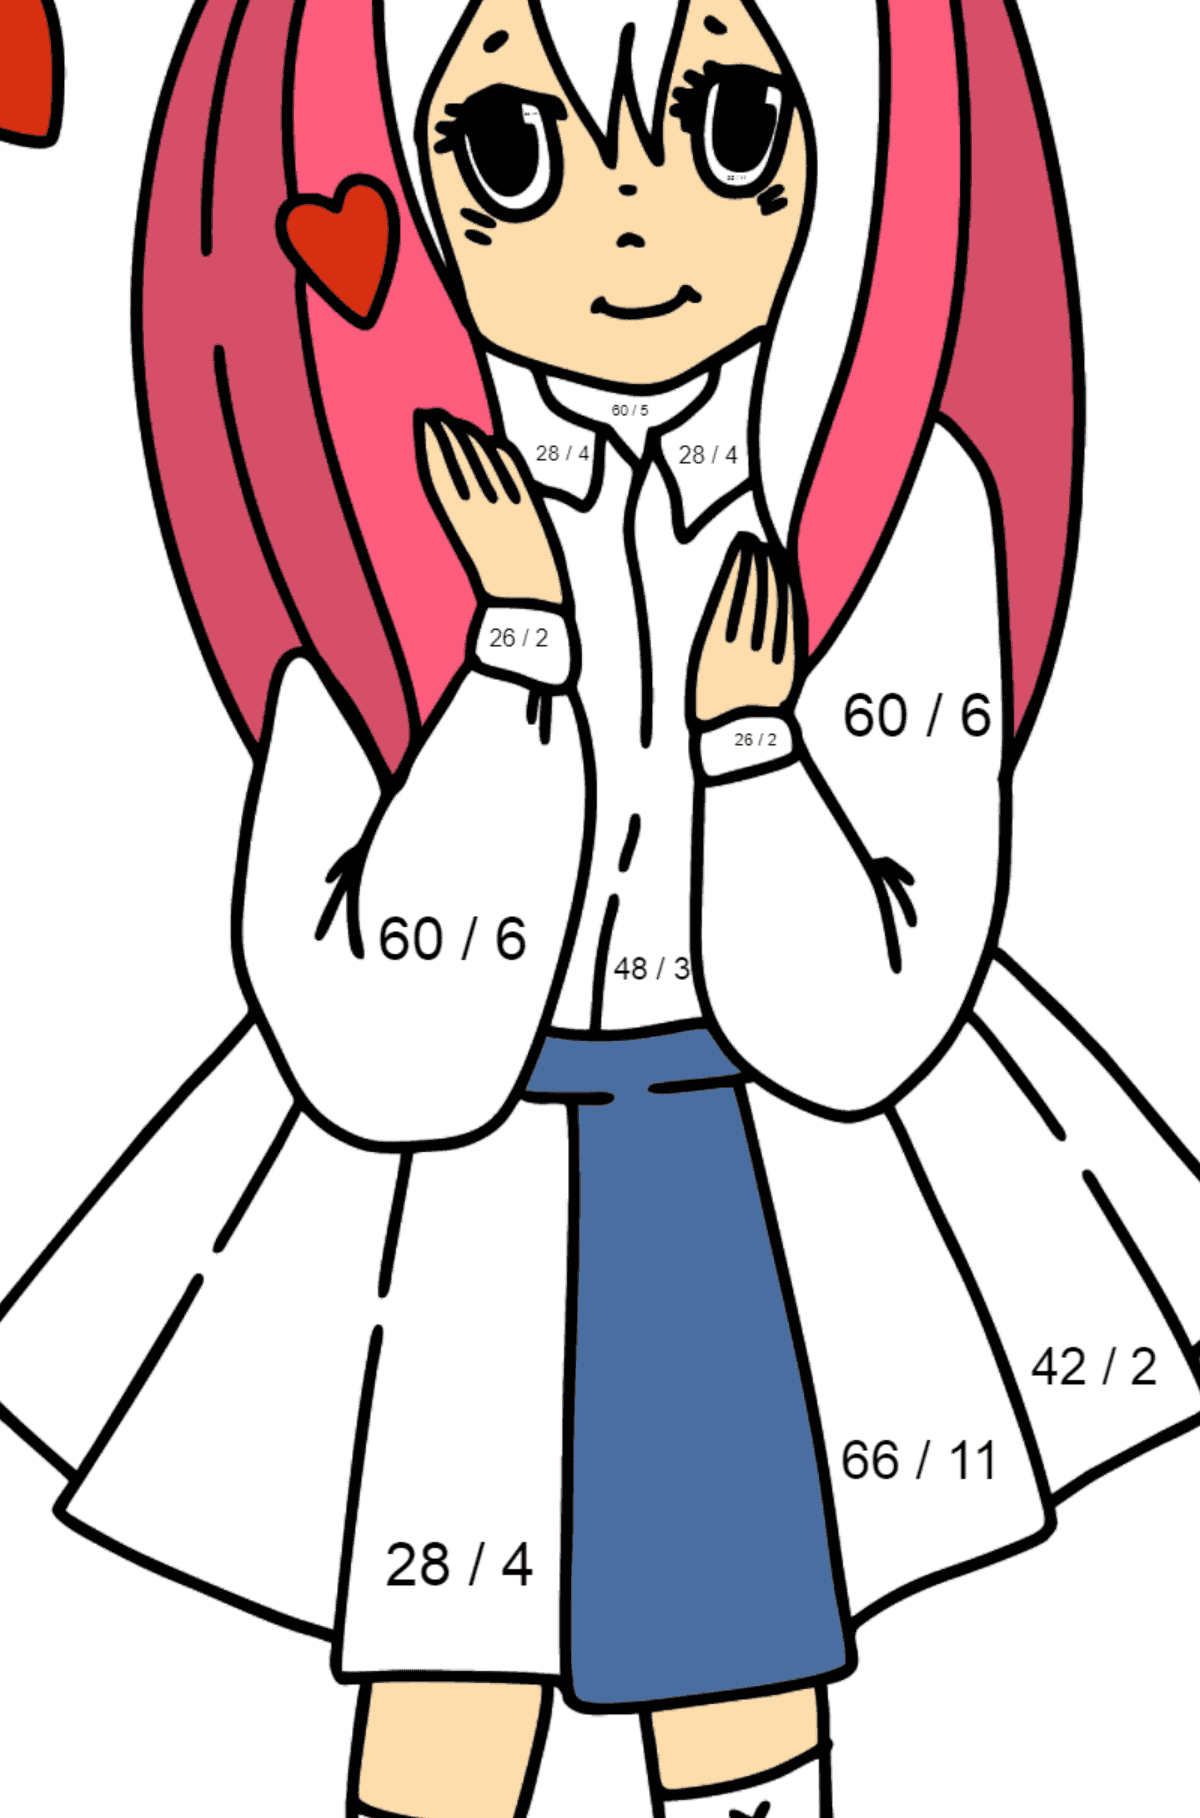 Anime girl in love coloring page - Math Coloring - Division for Kids